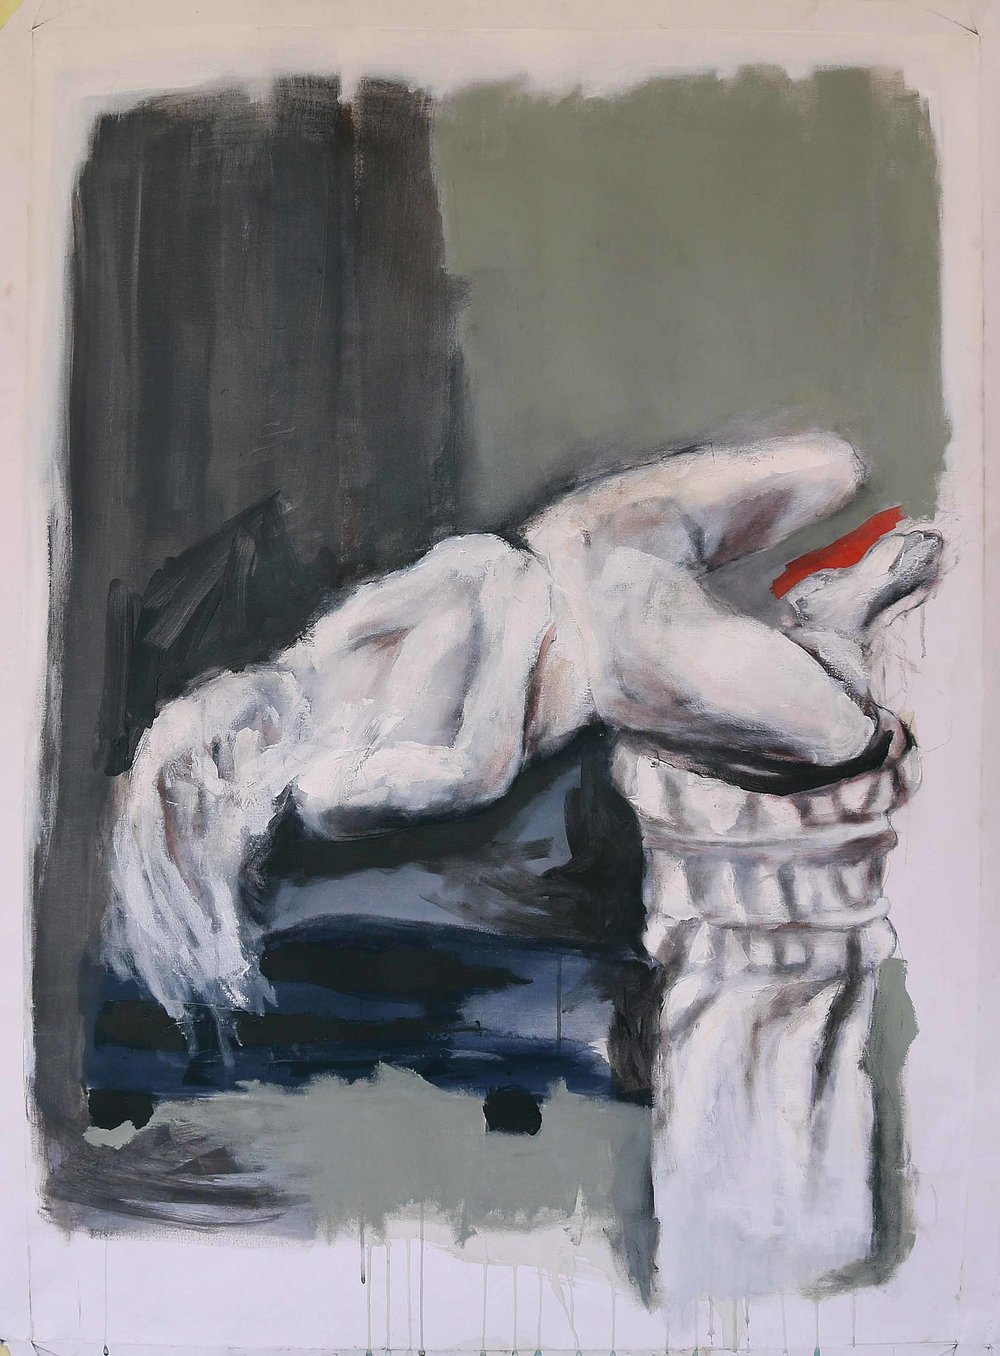 Sleeping Figure, 2016, Acrylic paint on canvas, 140 x 100 cm.